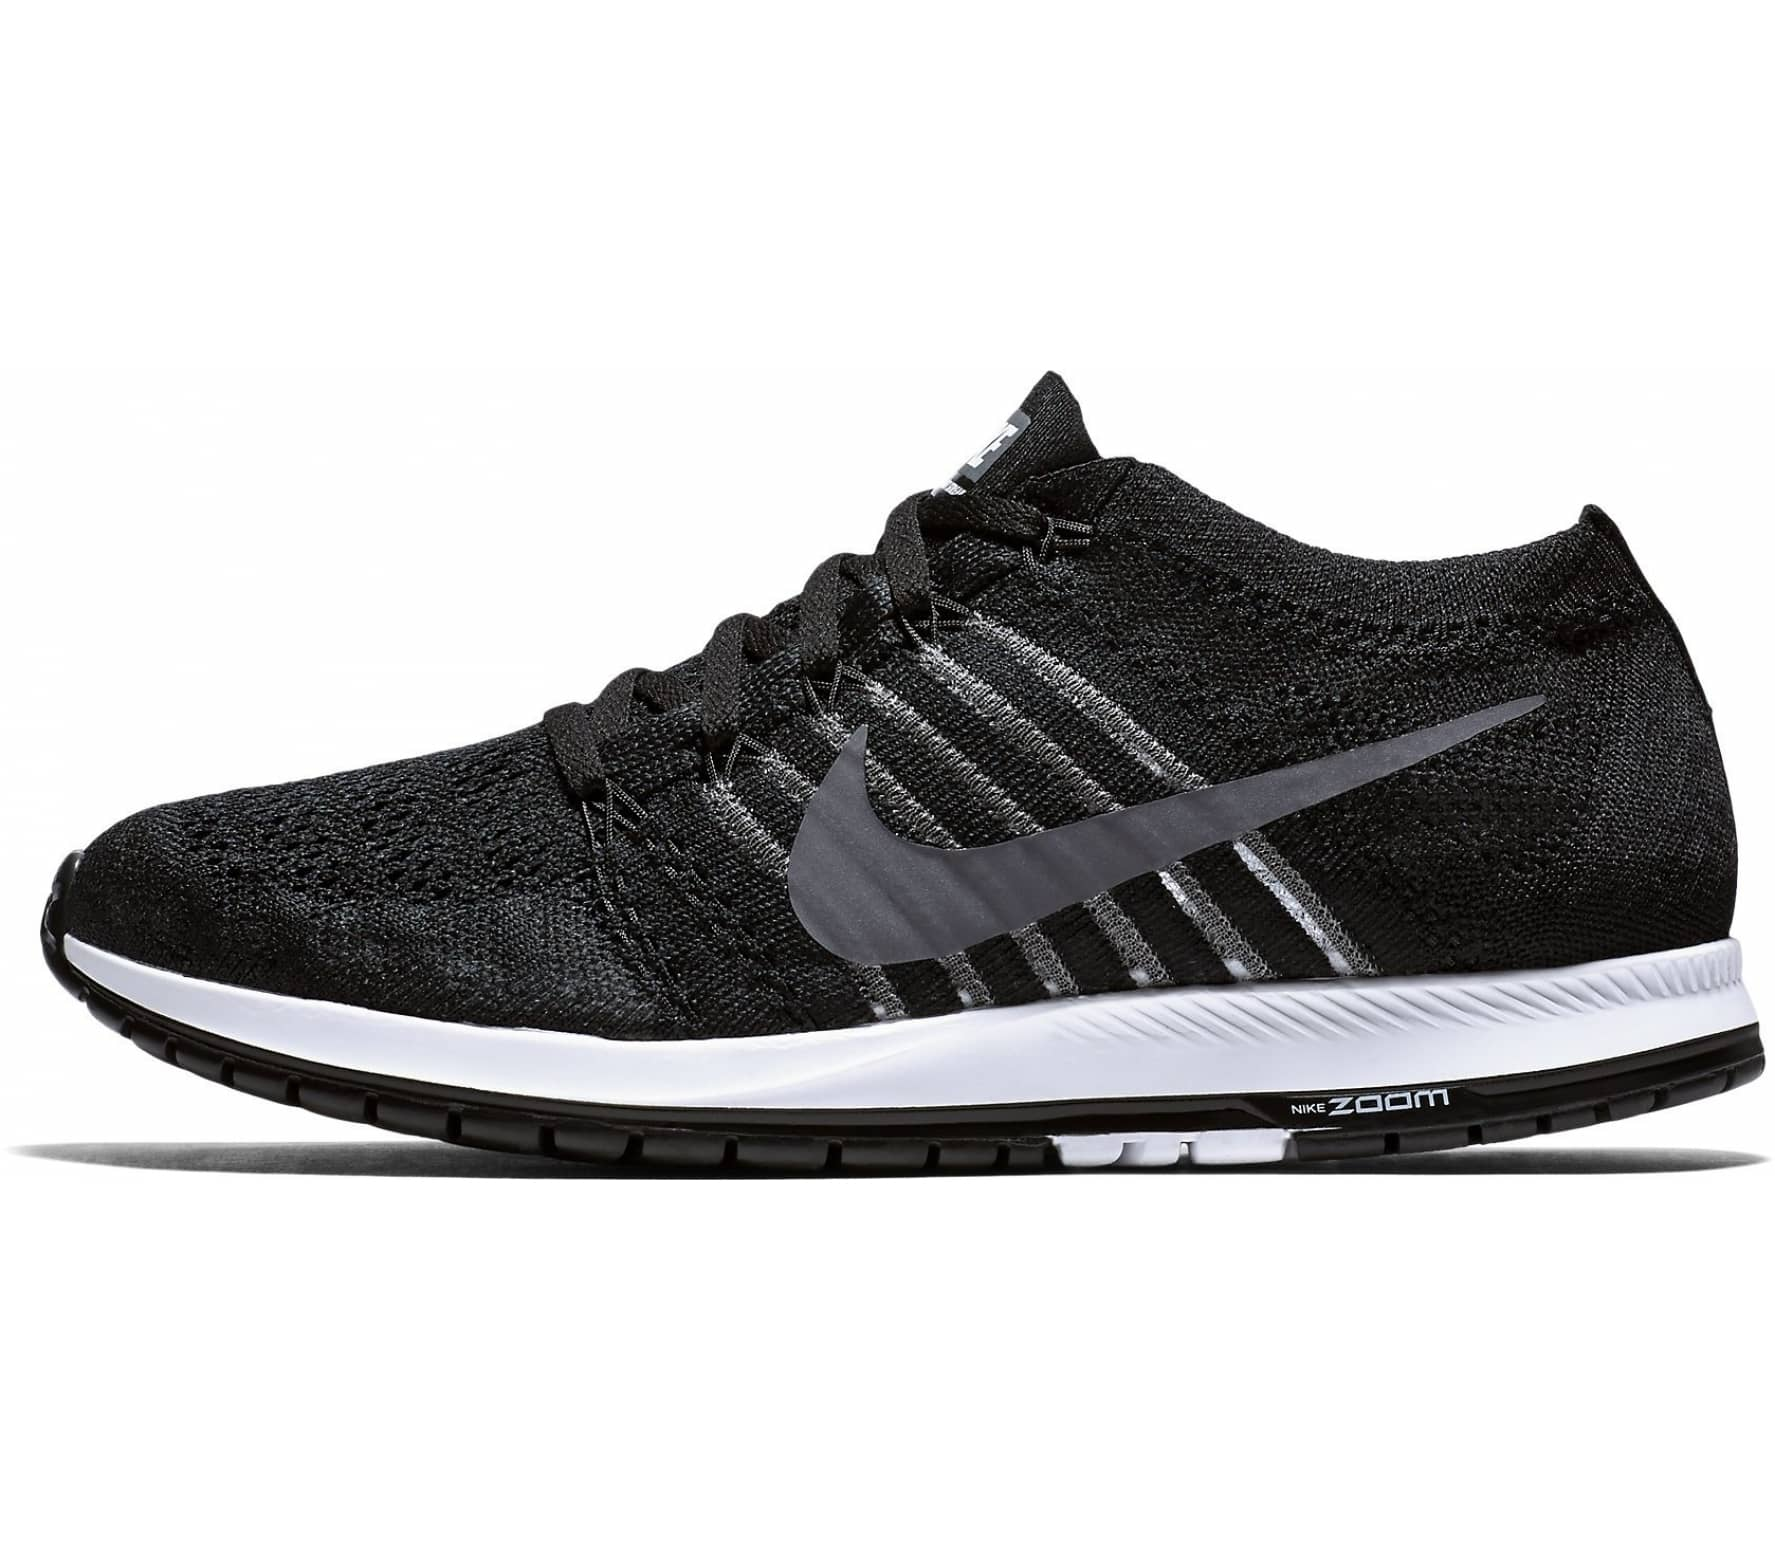 75b491ca03e Nike - Air Zoom Flyknit Streak 6 men s running shoes (black white ...